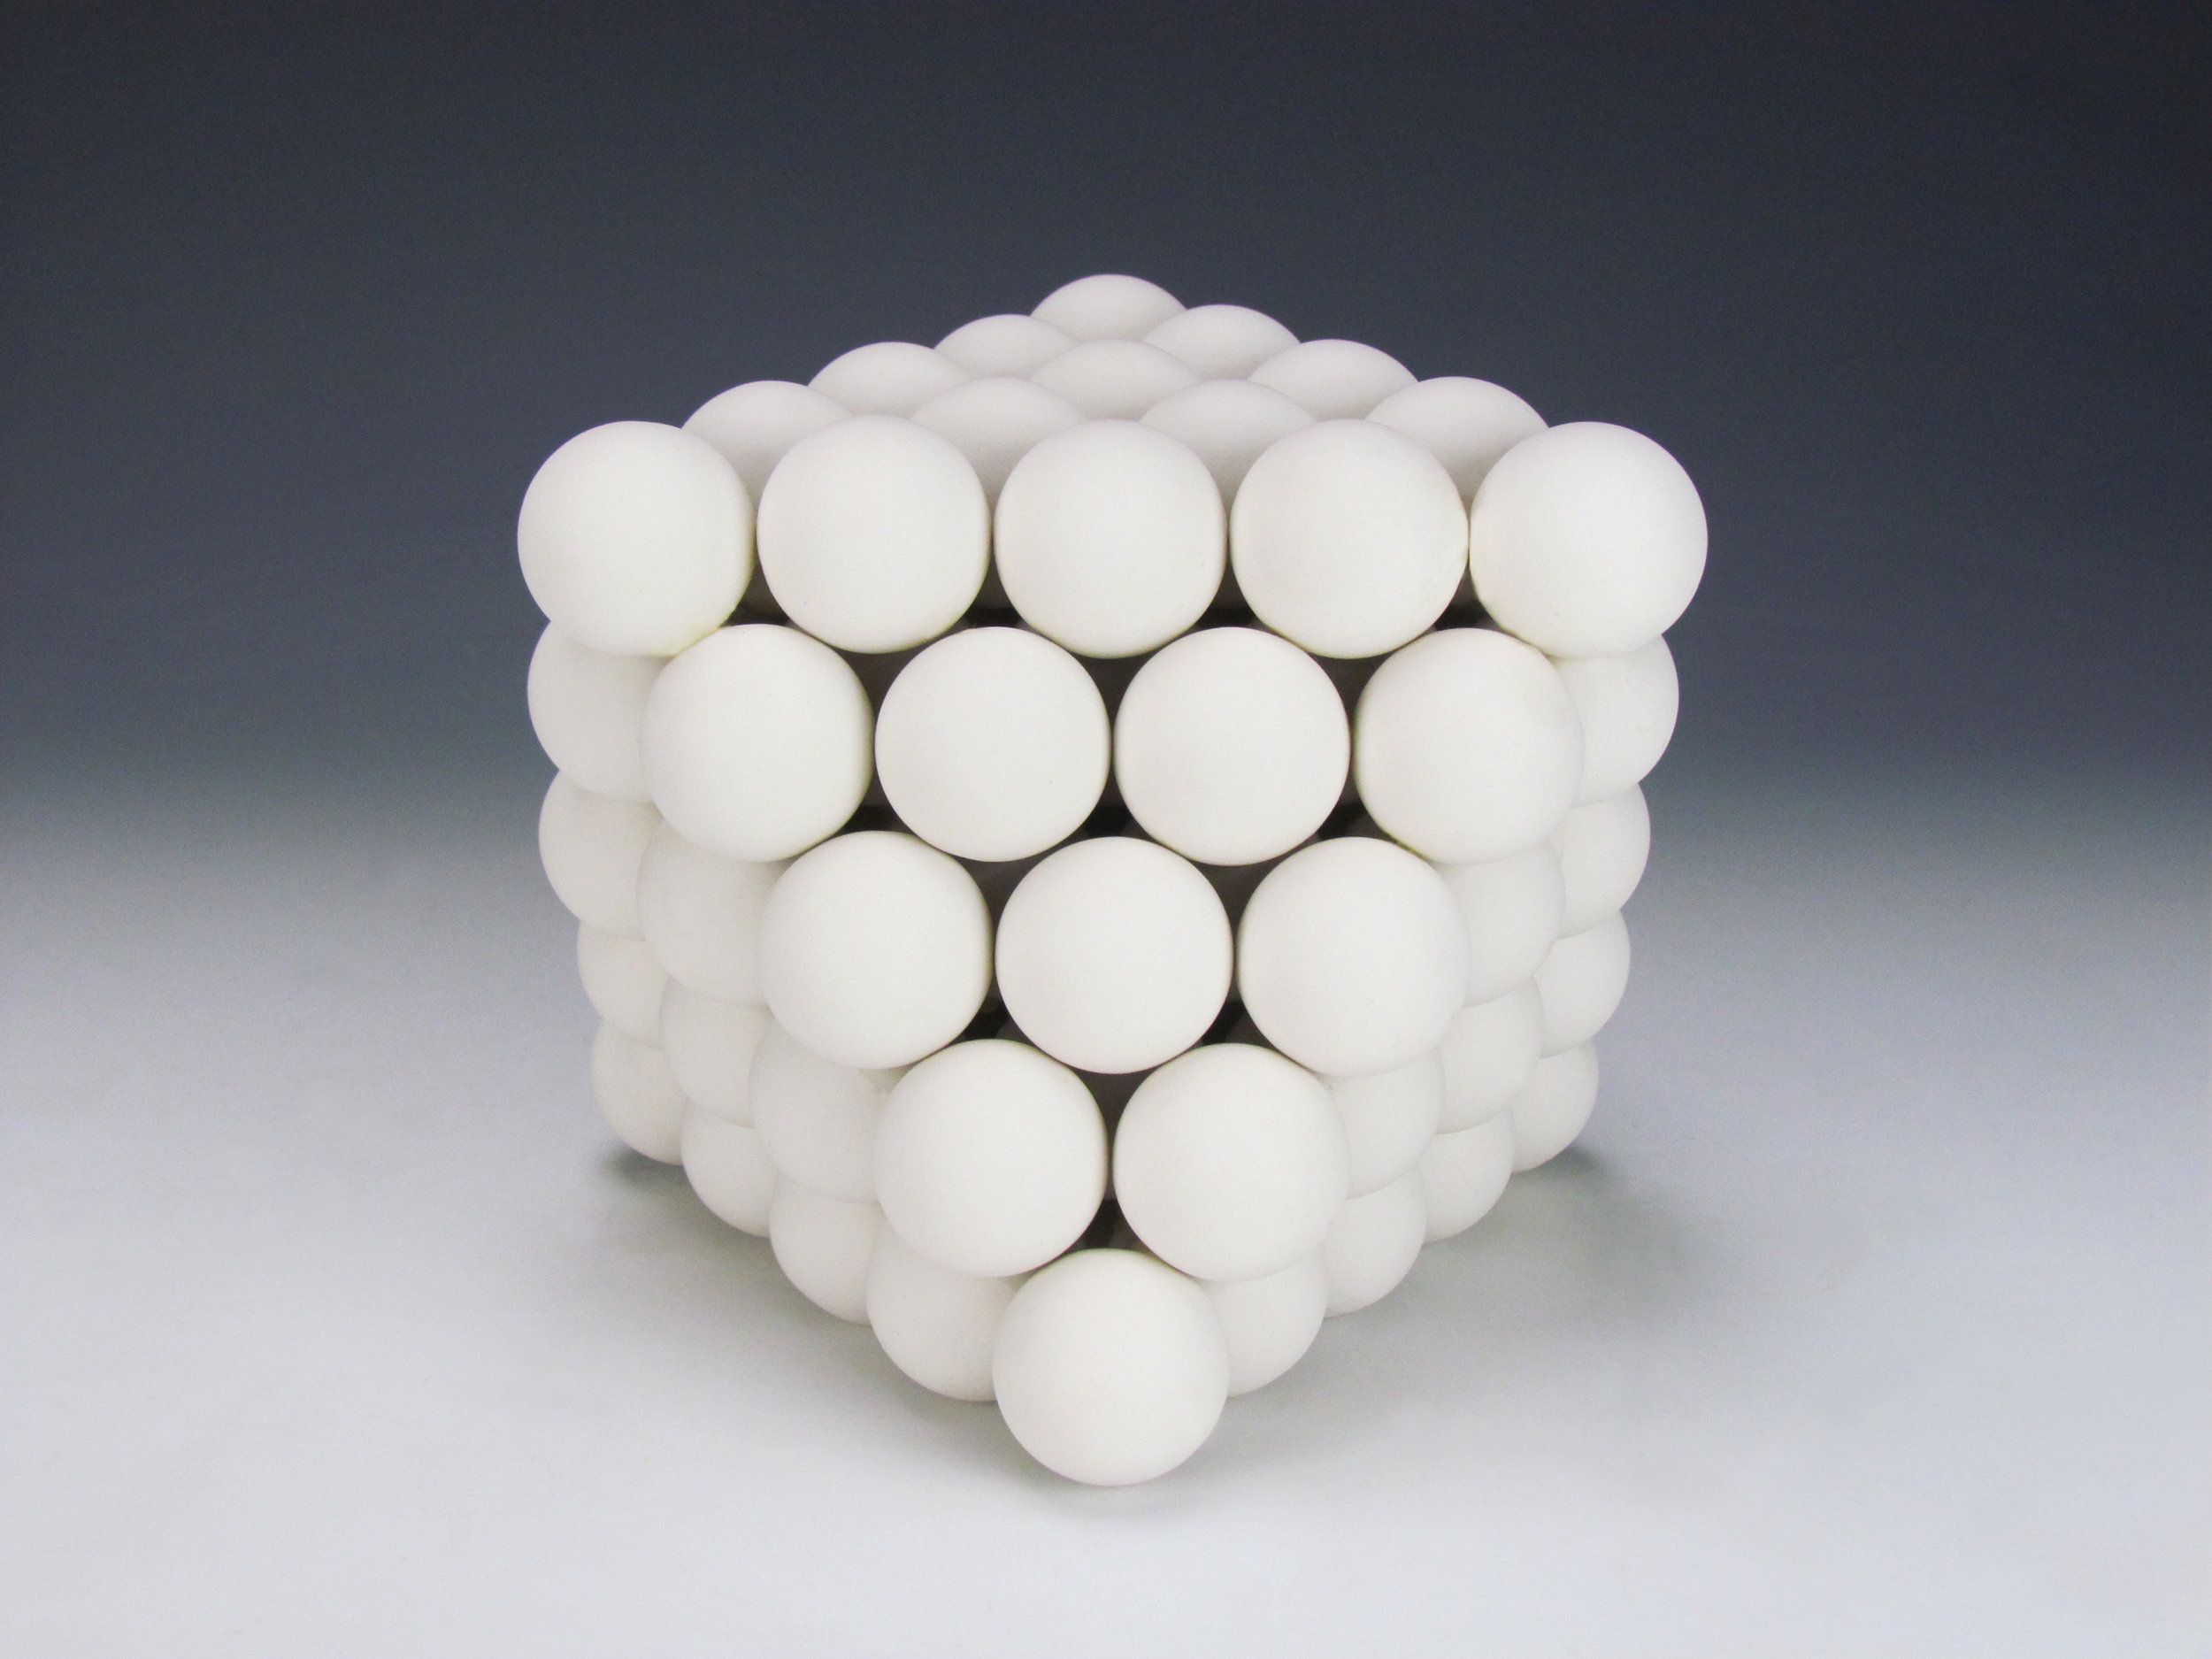 Ionic Series: Octahedron  |  8 x 8 x 10 inches  |  Porcelain  |  2016